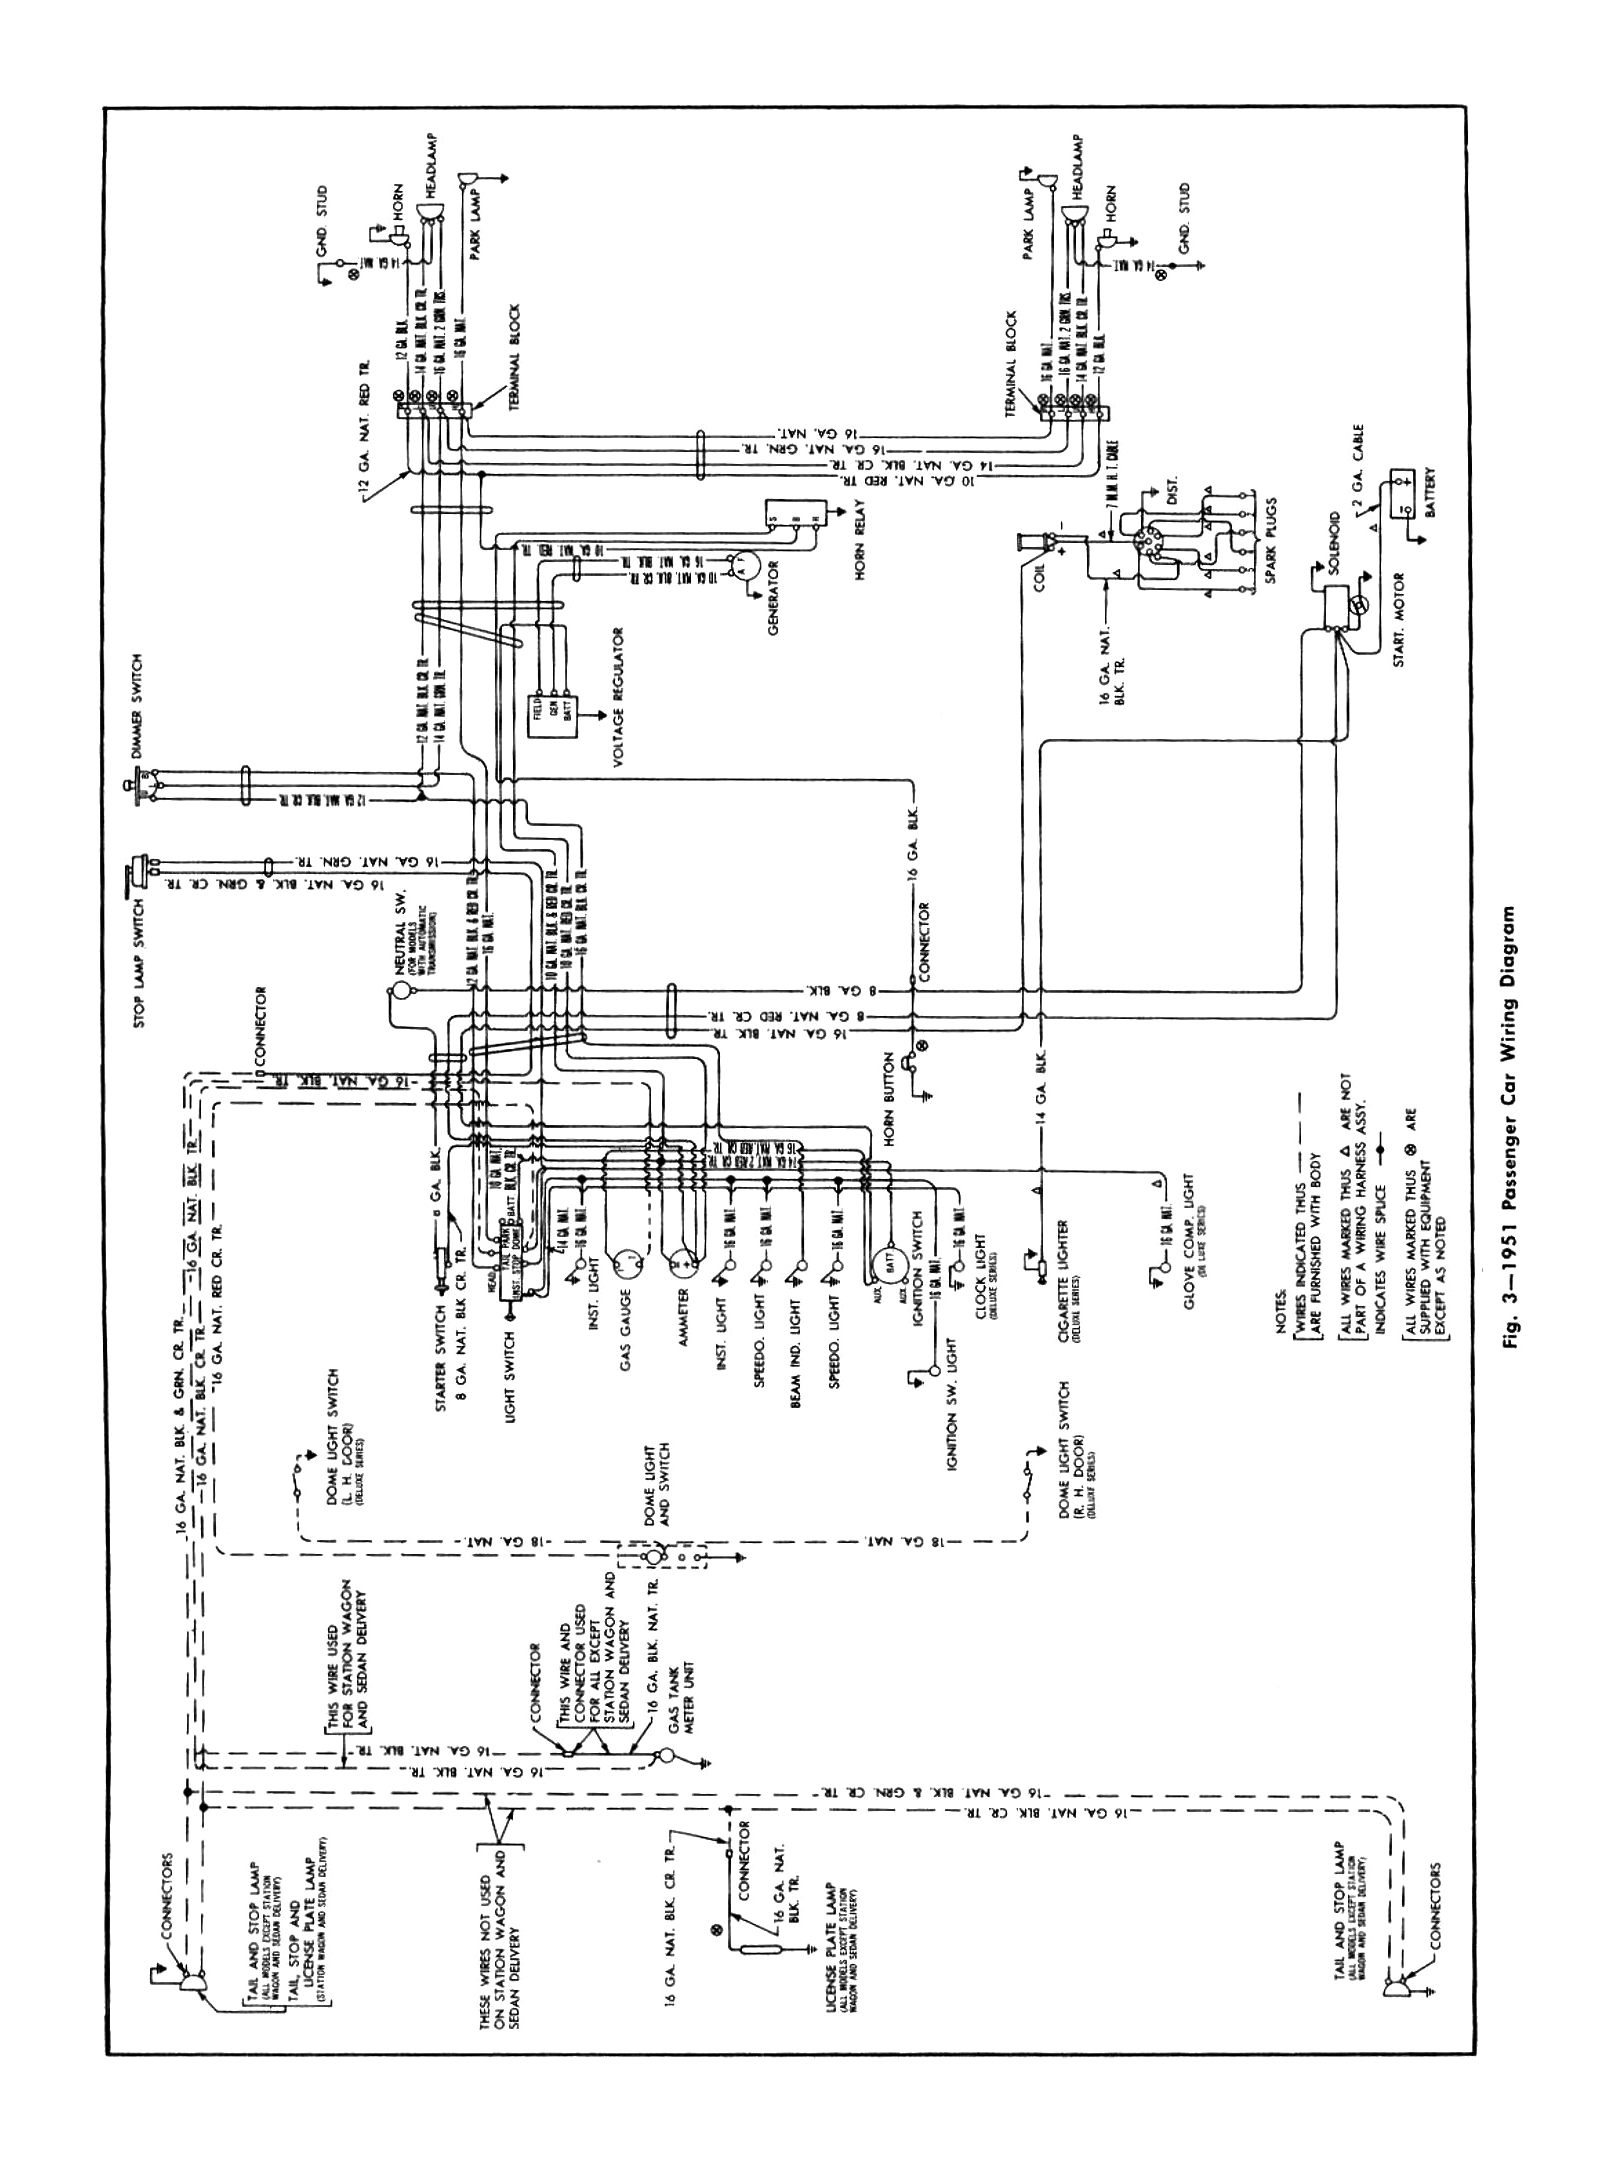 51car wiring loom diagram 1 2wire loom \u2022 wiring diagrams j squared co ez wiring mini 20 wiring diagram download at n-0.co